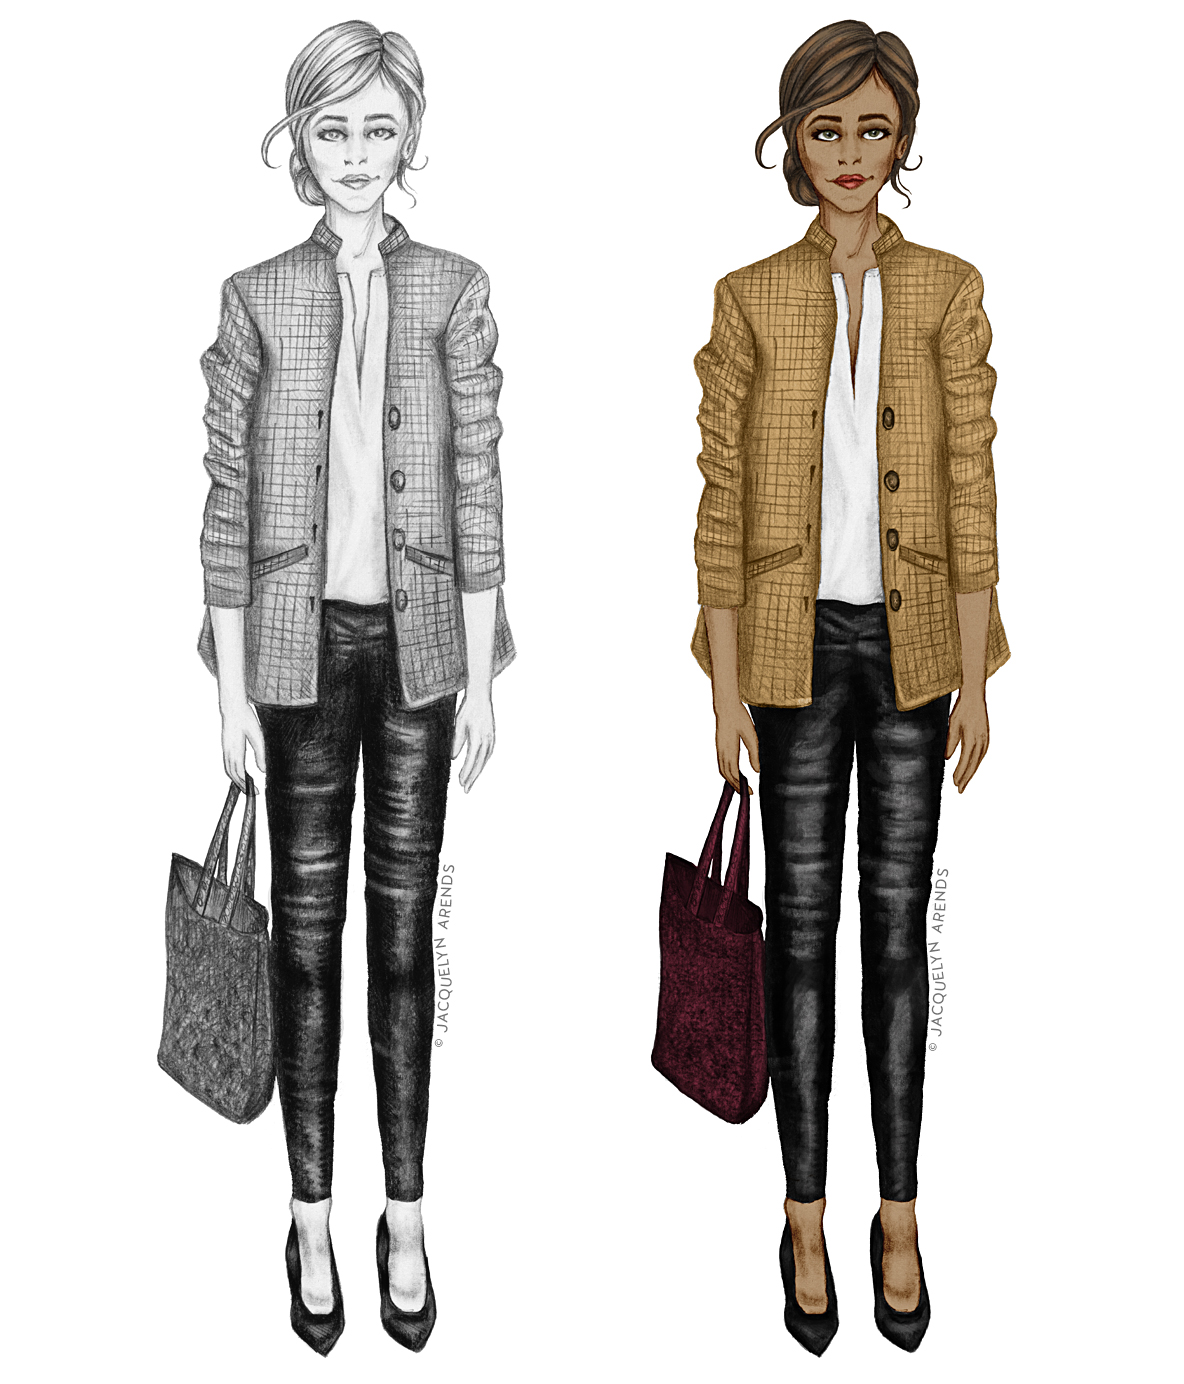 Fashion illustration study — sketched version and digitally painted sketch version